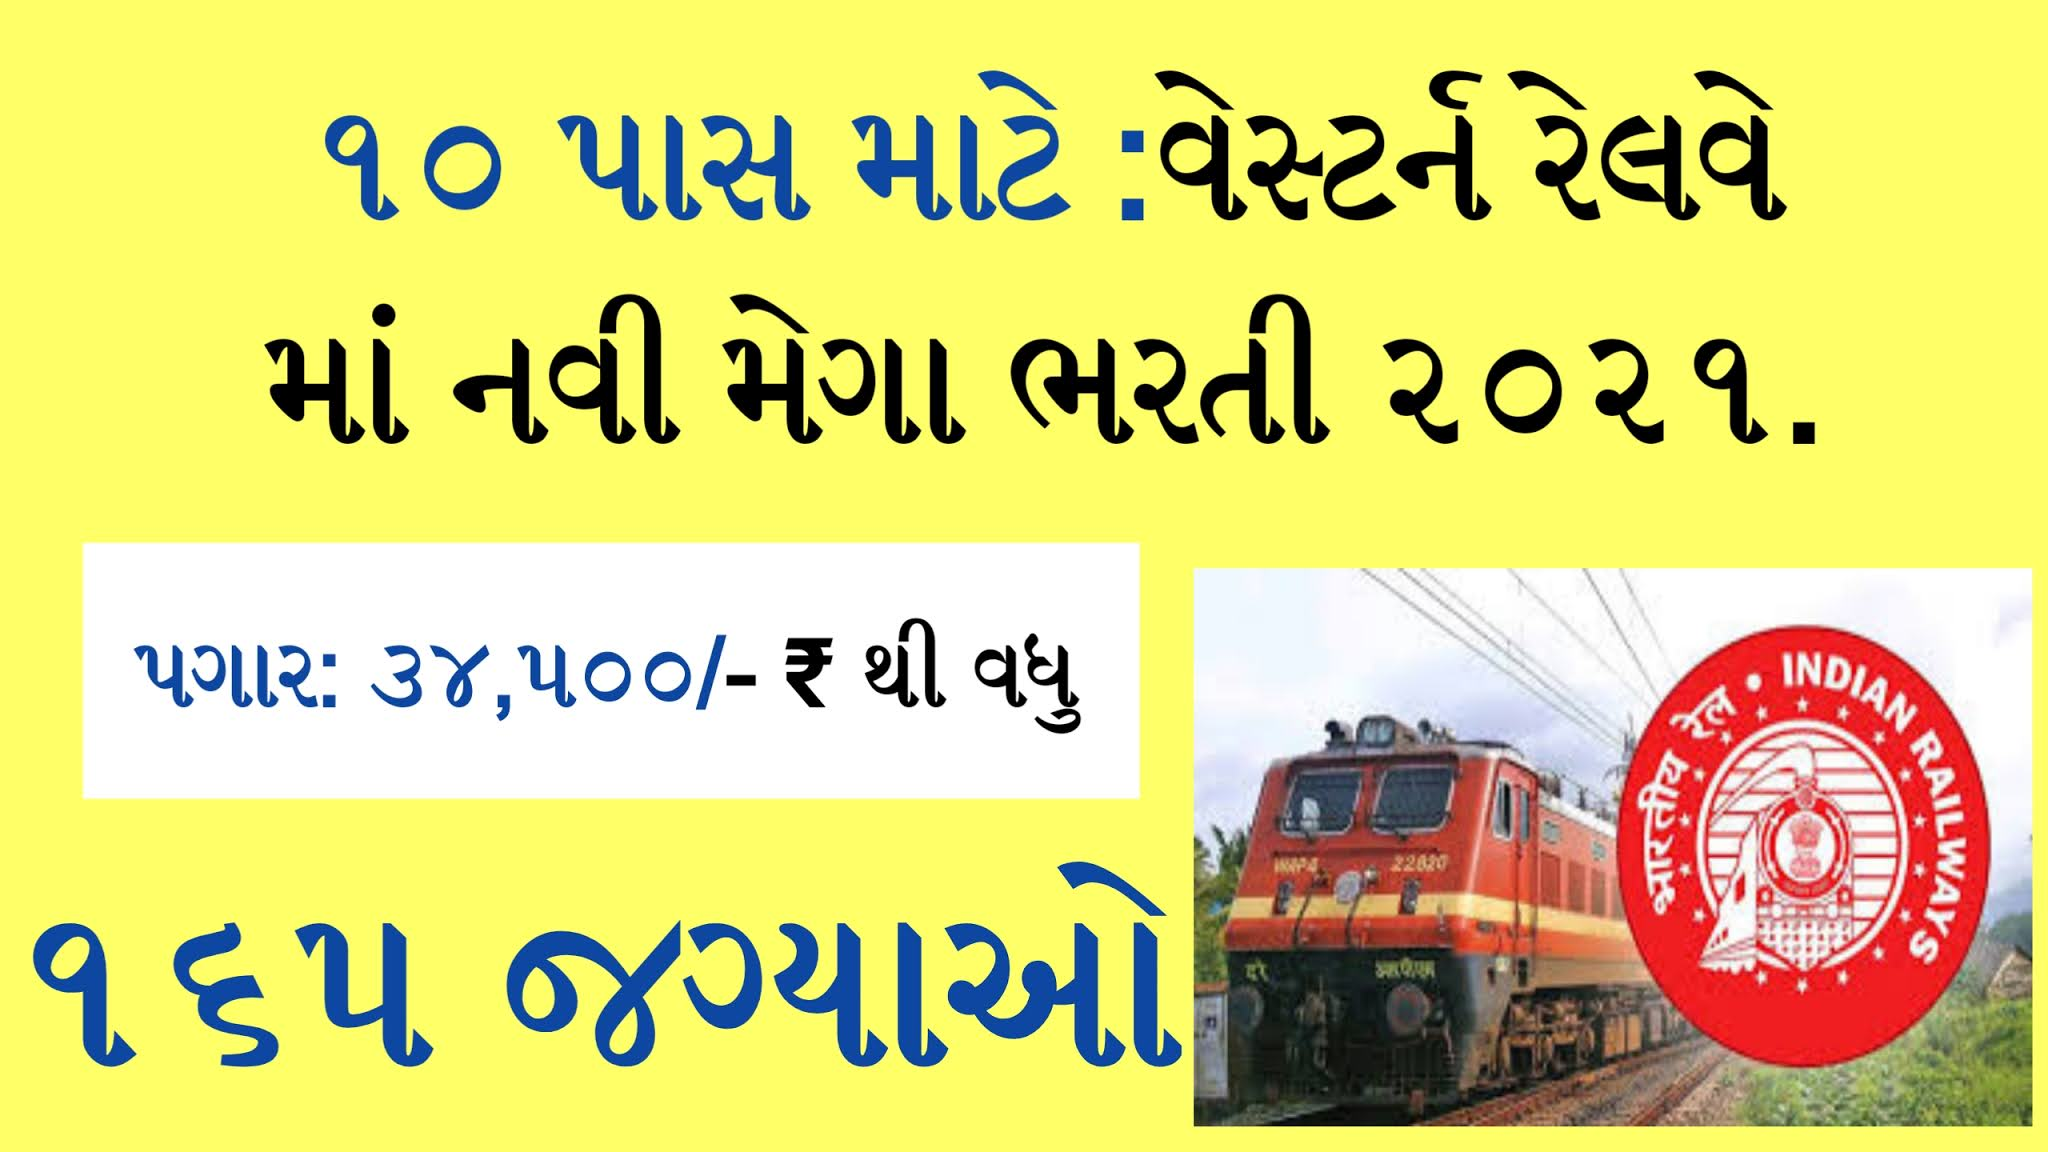 West Central Railway Recruitment Apply For 165 Posts 2021